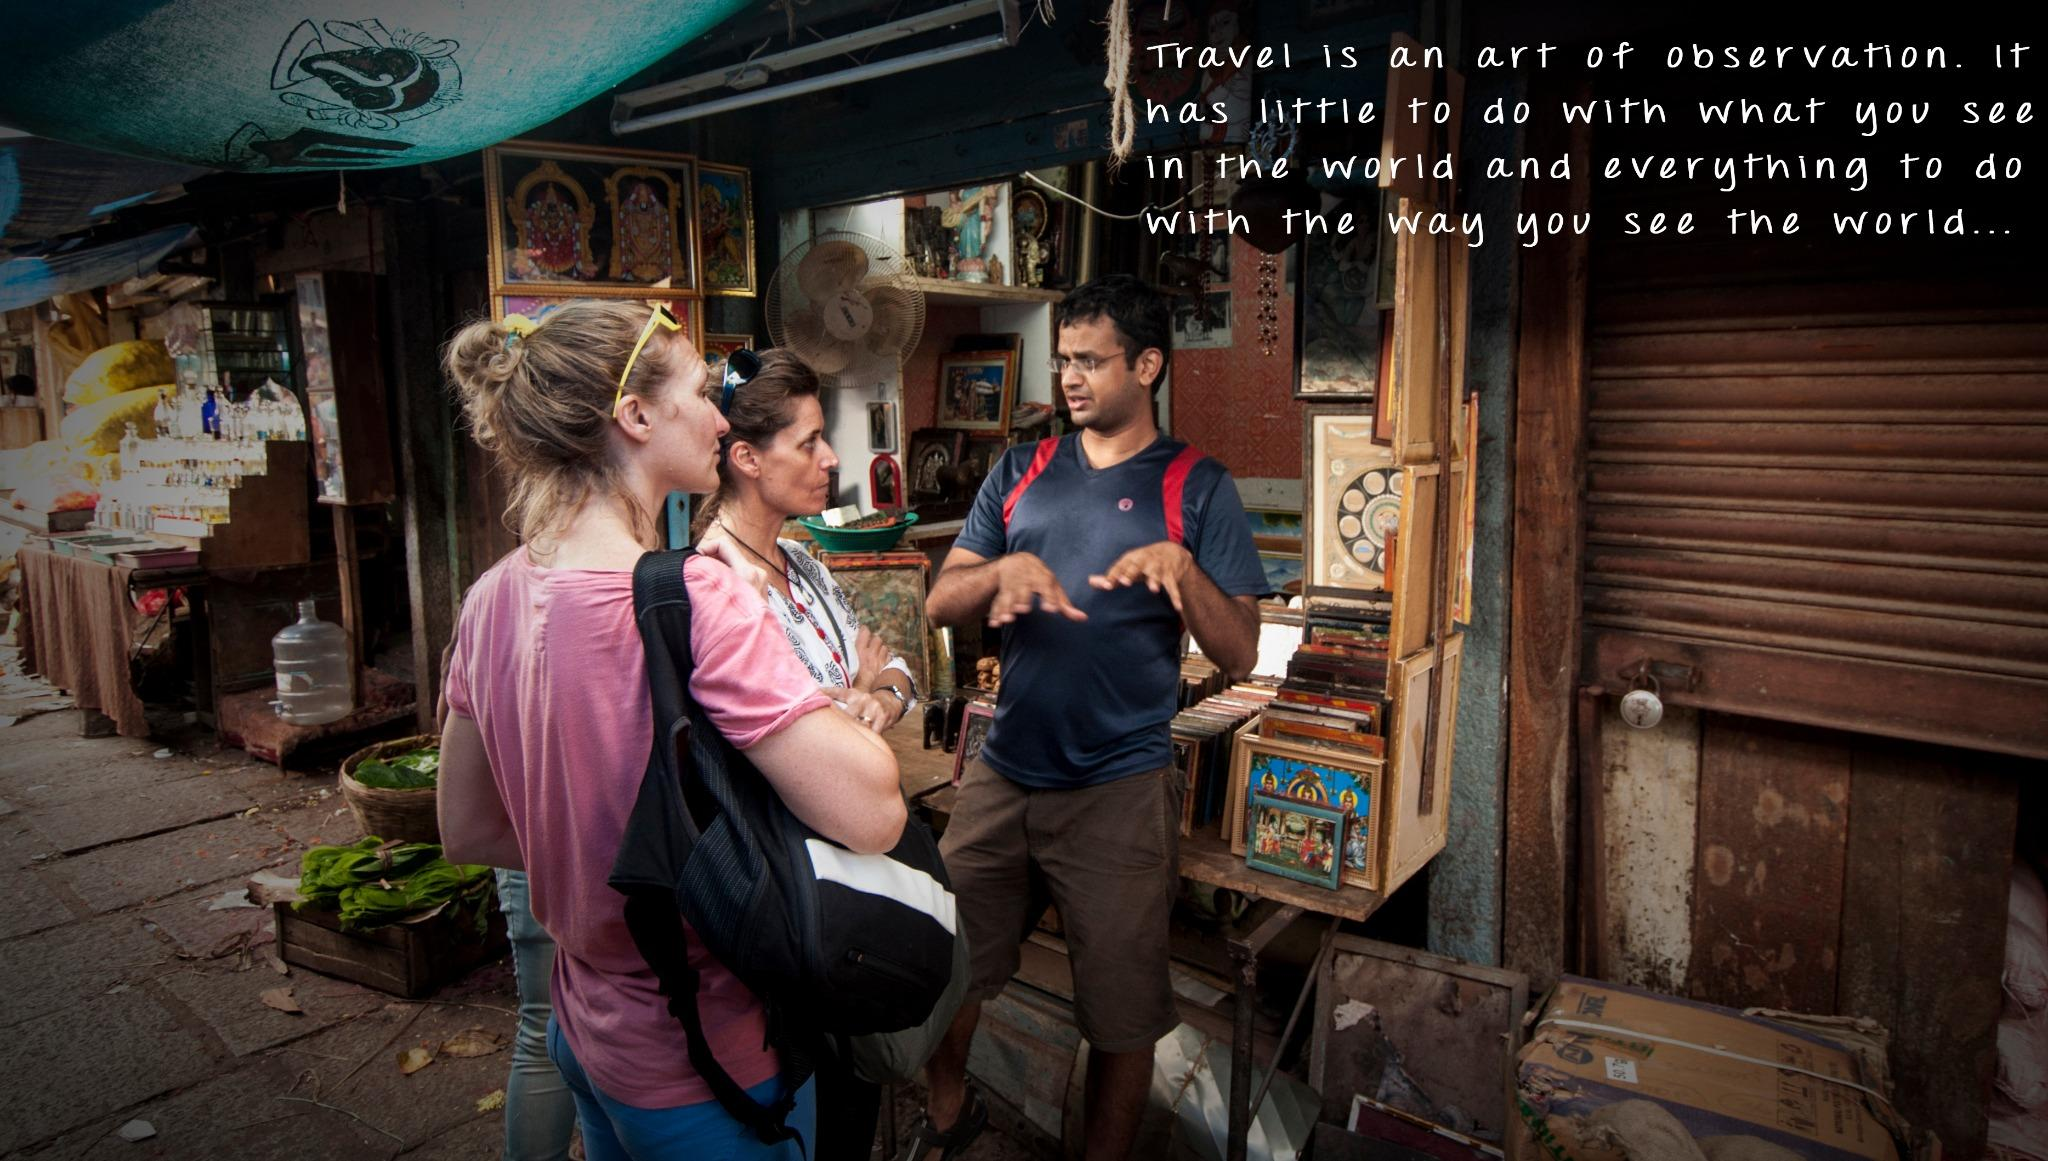 Travel has little to do with what you see in the world and everything to do with the way you see the world. http://t.co/BBcw7veg7b